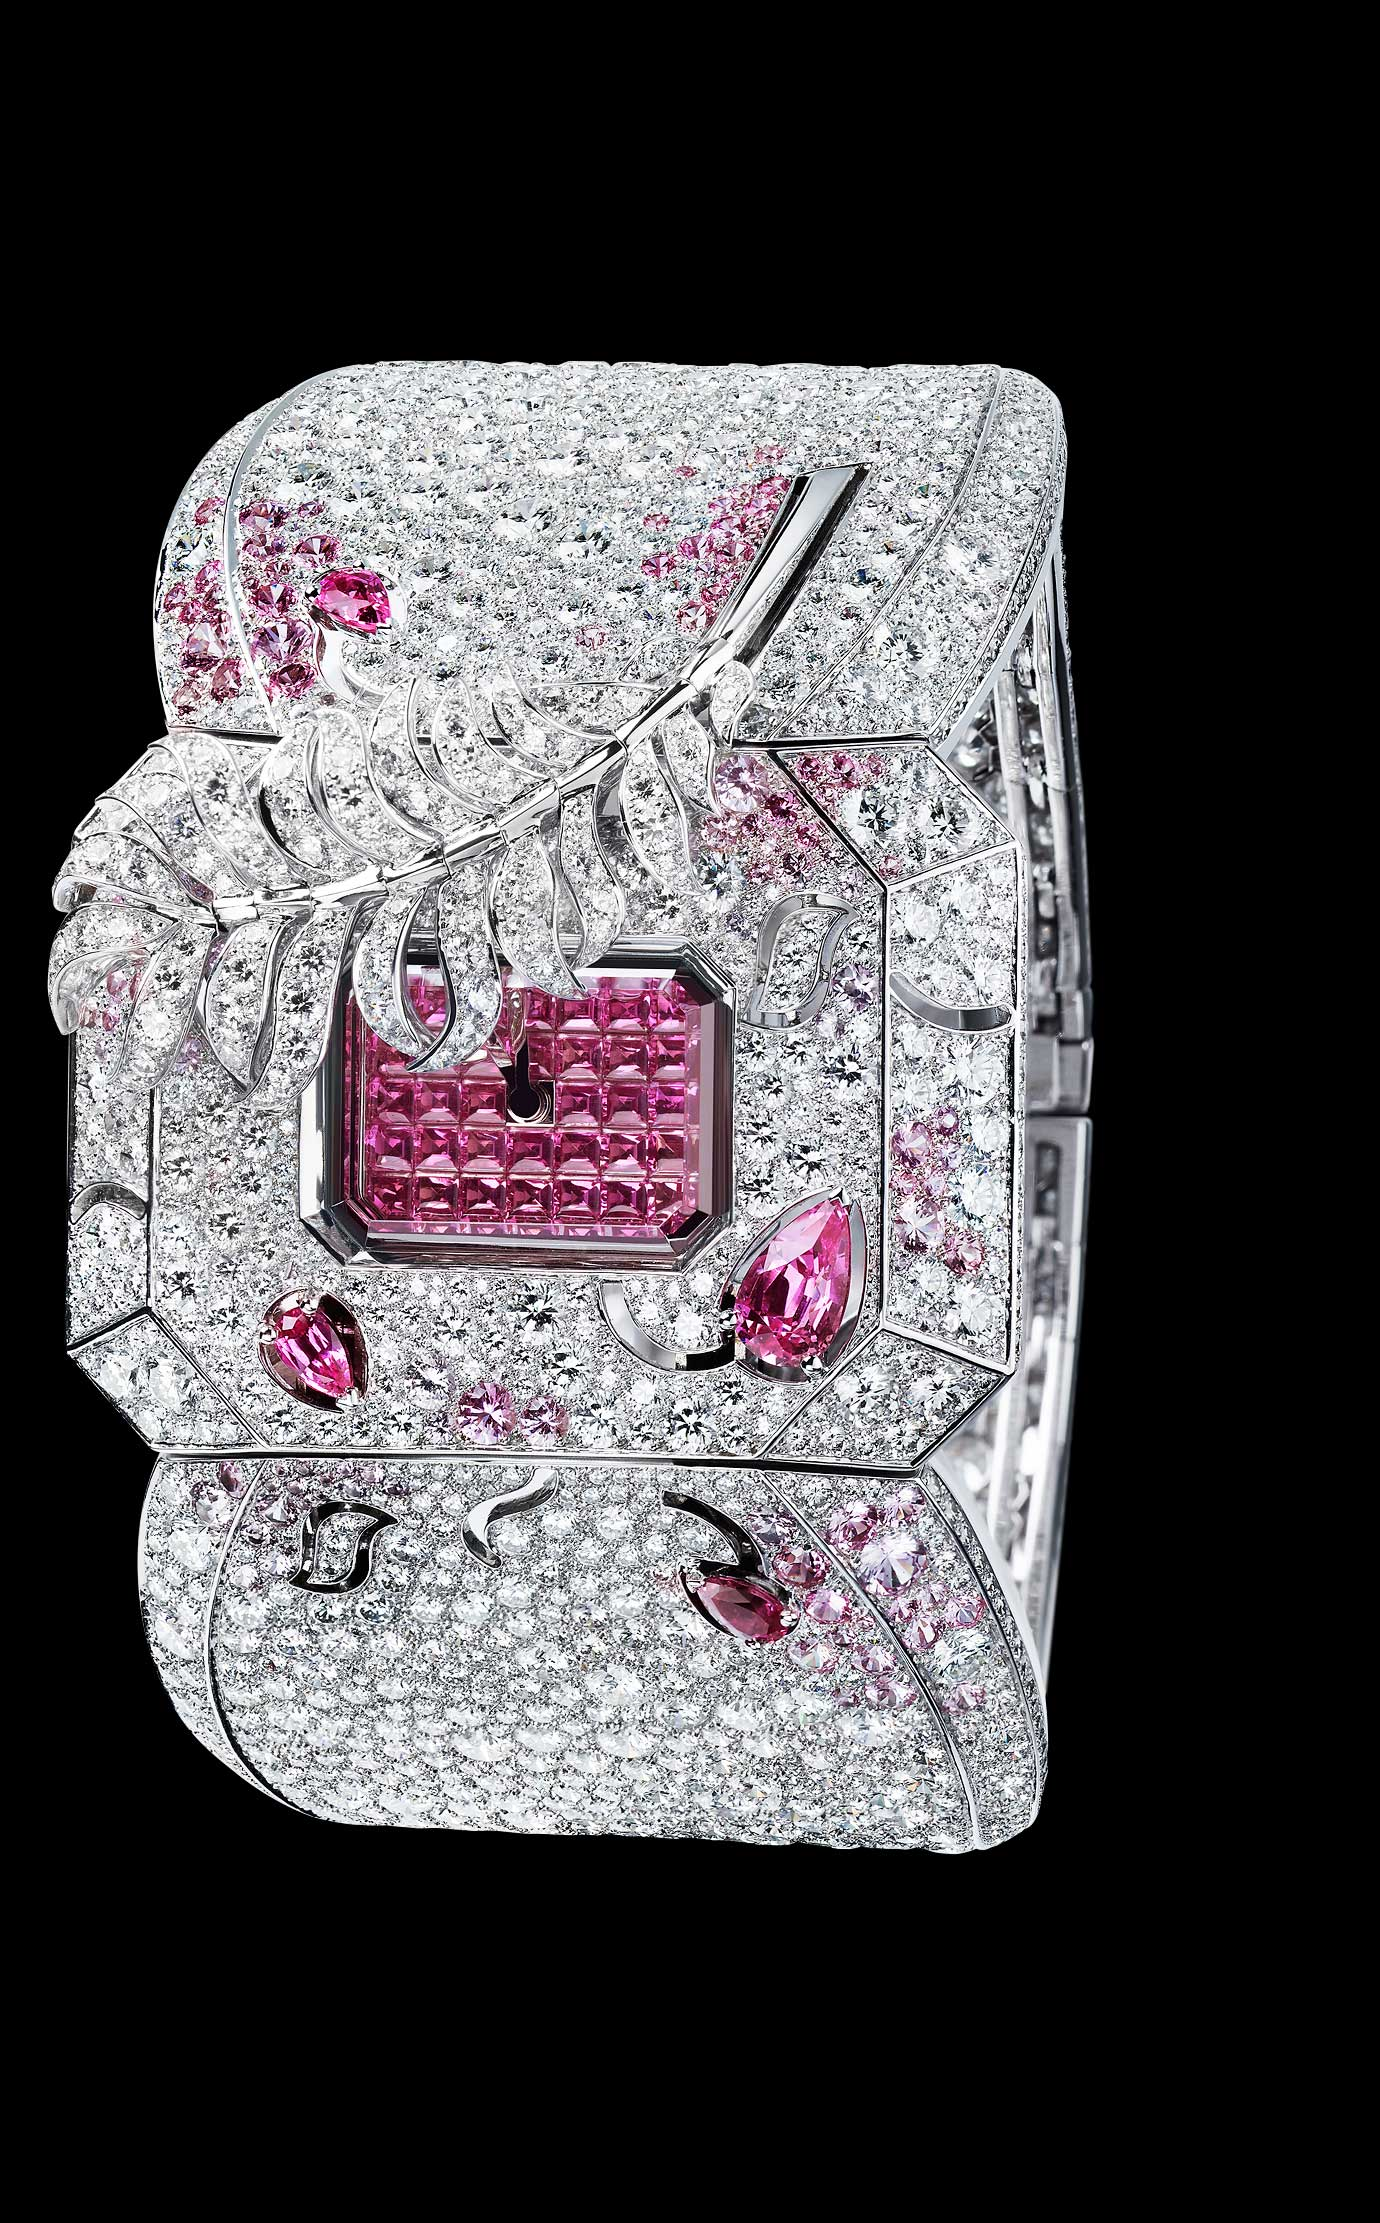 Les Eternelles de CHANEL. Watch in 18K white gold, pink sapphires and diamonds. High-precision quartz movement. - Open